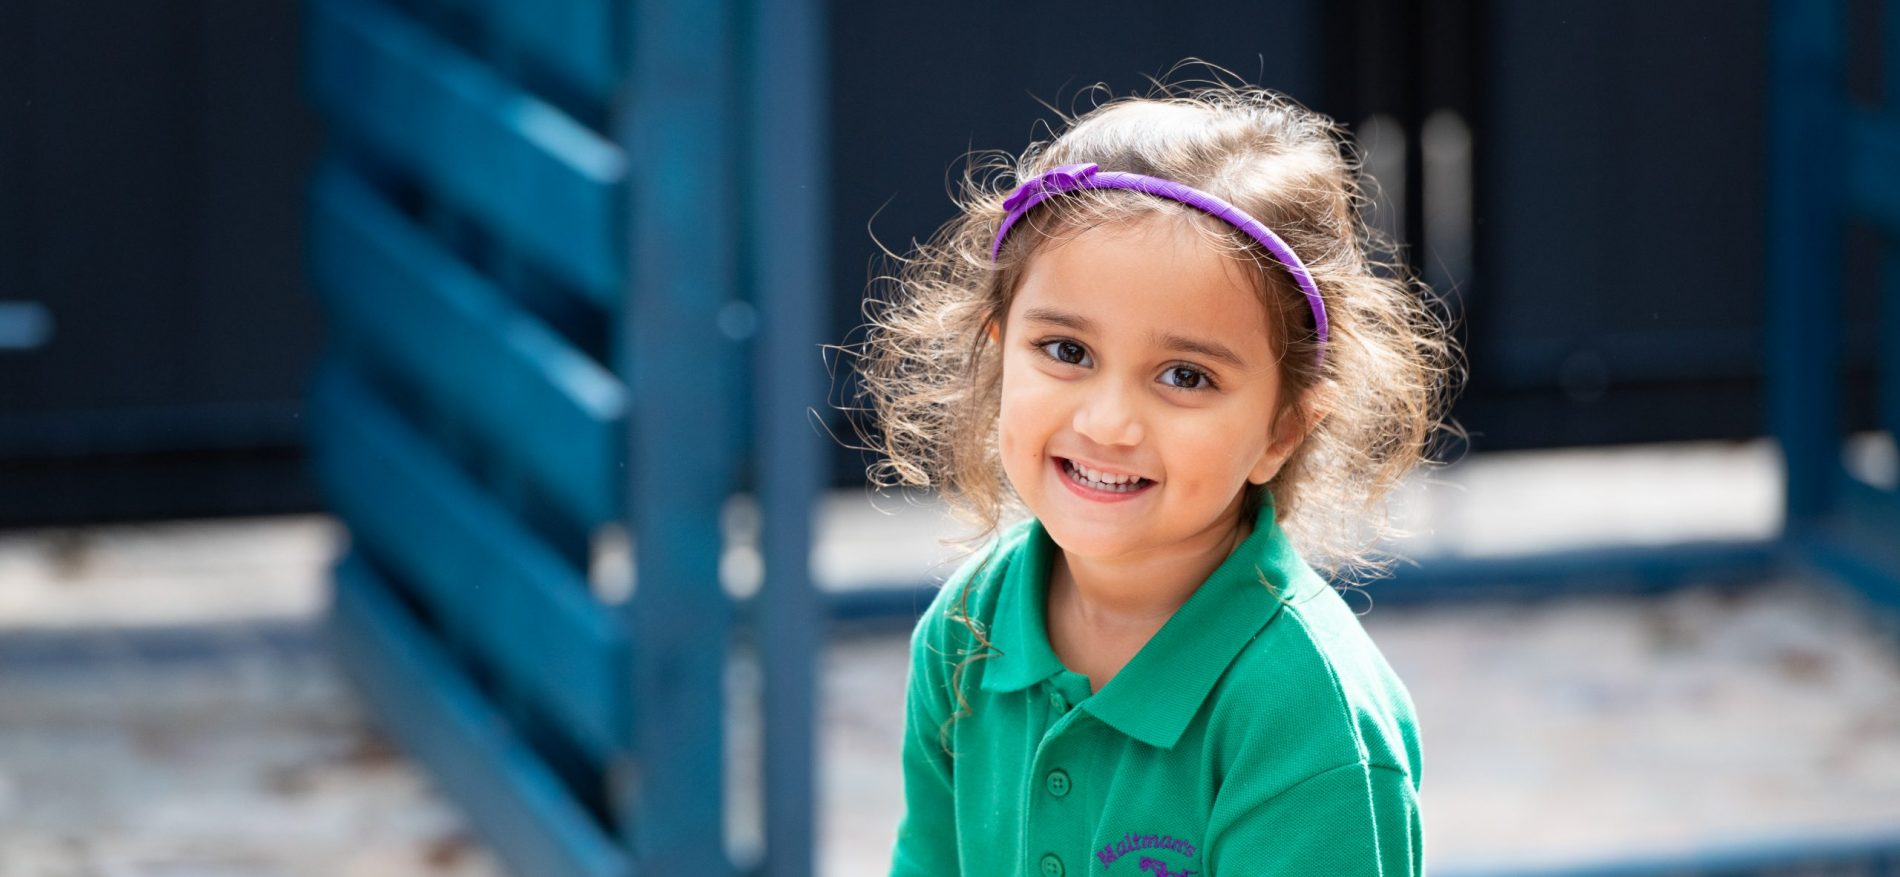 A smiling child in the playground